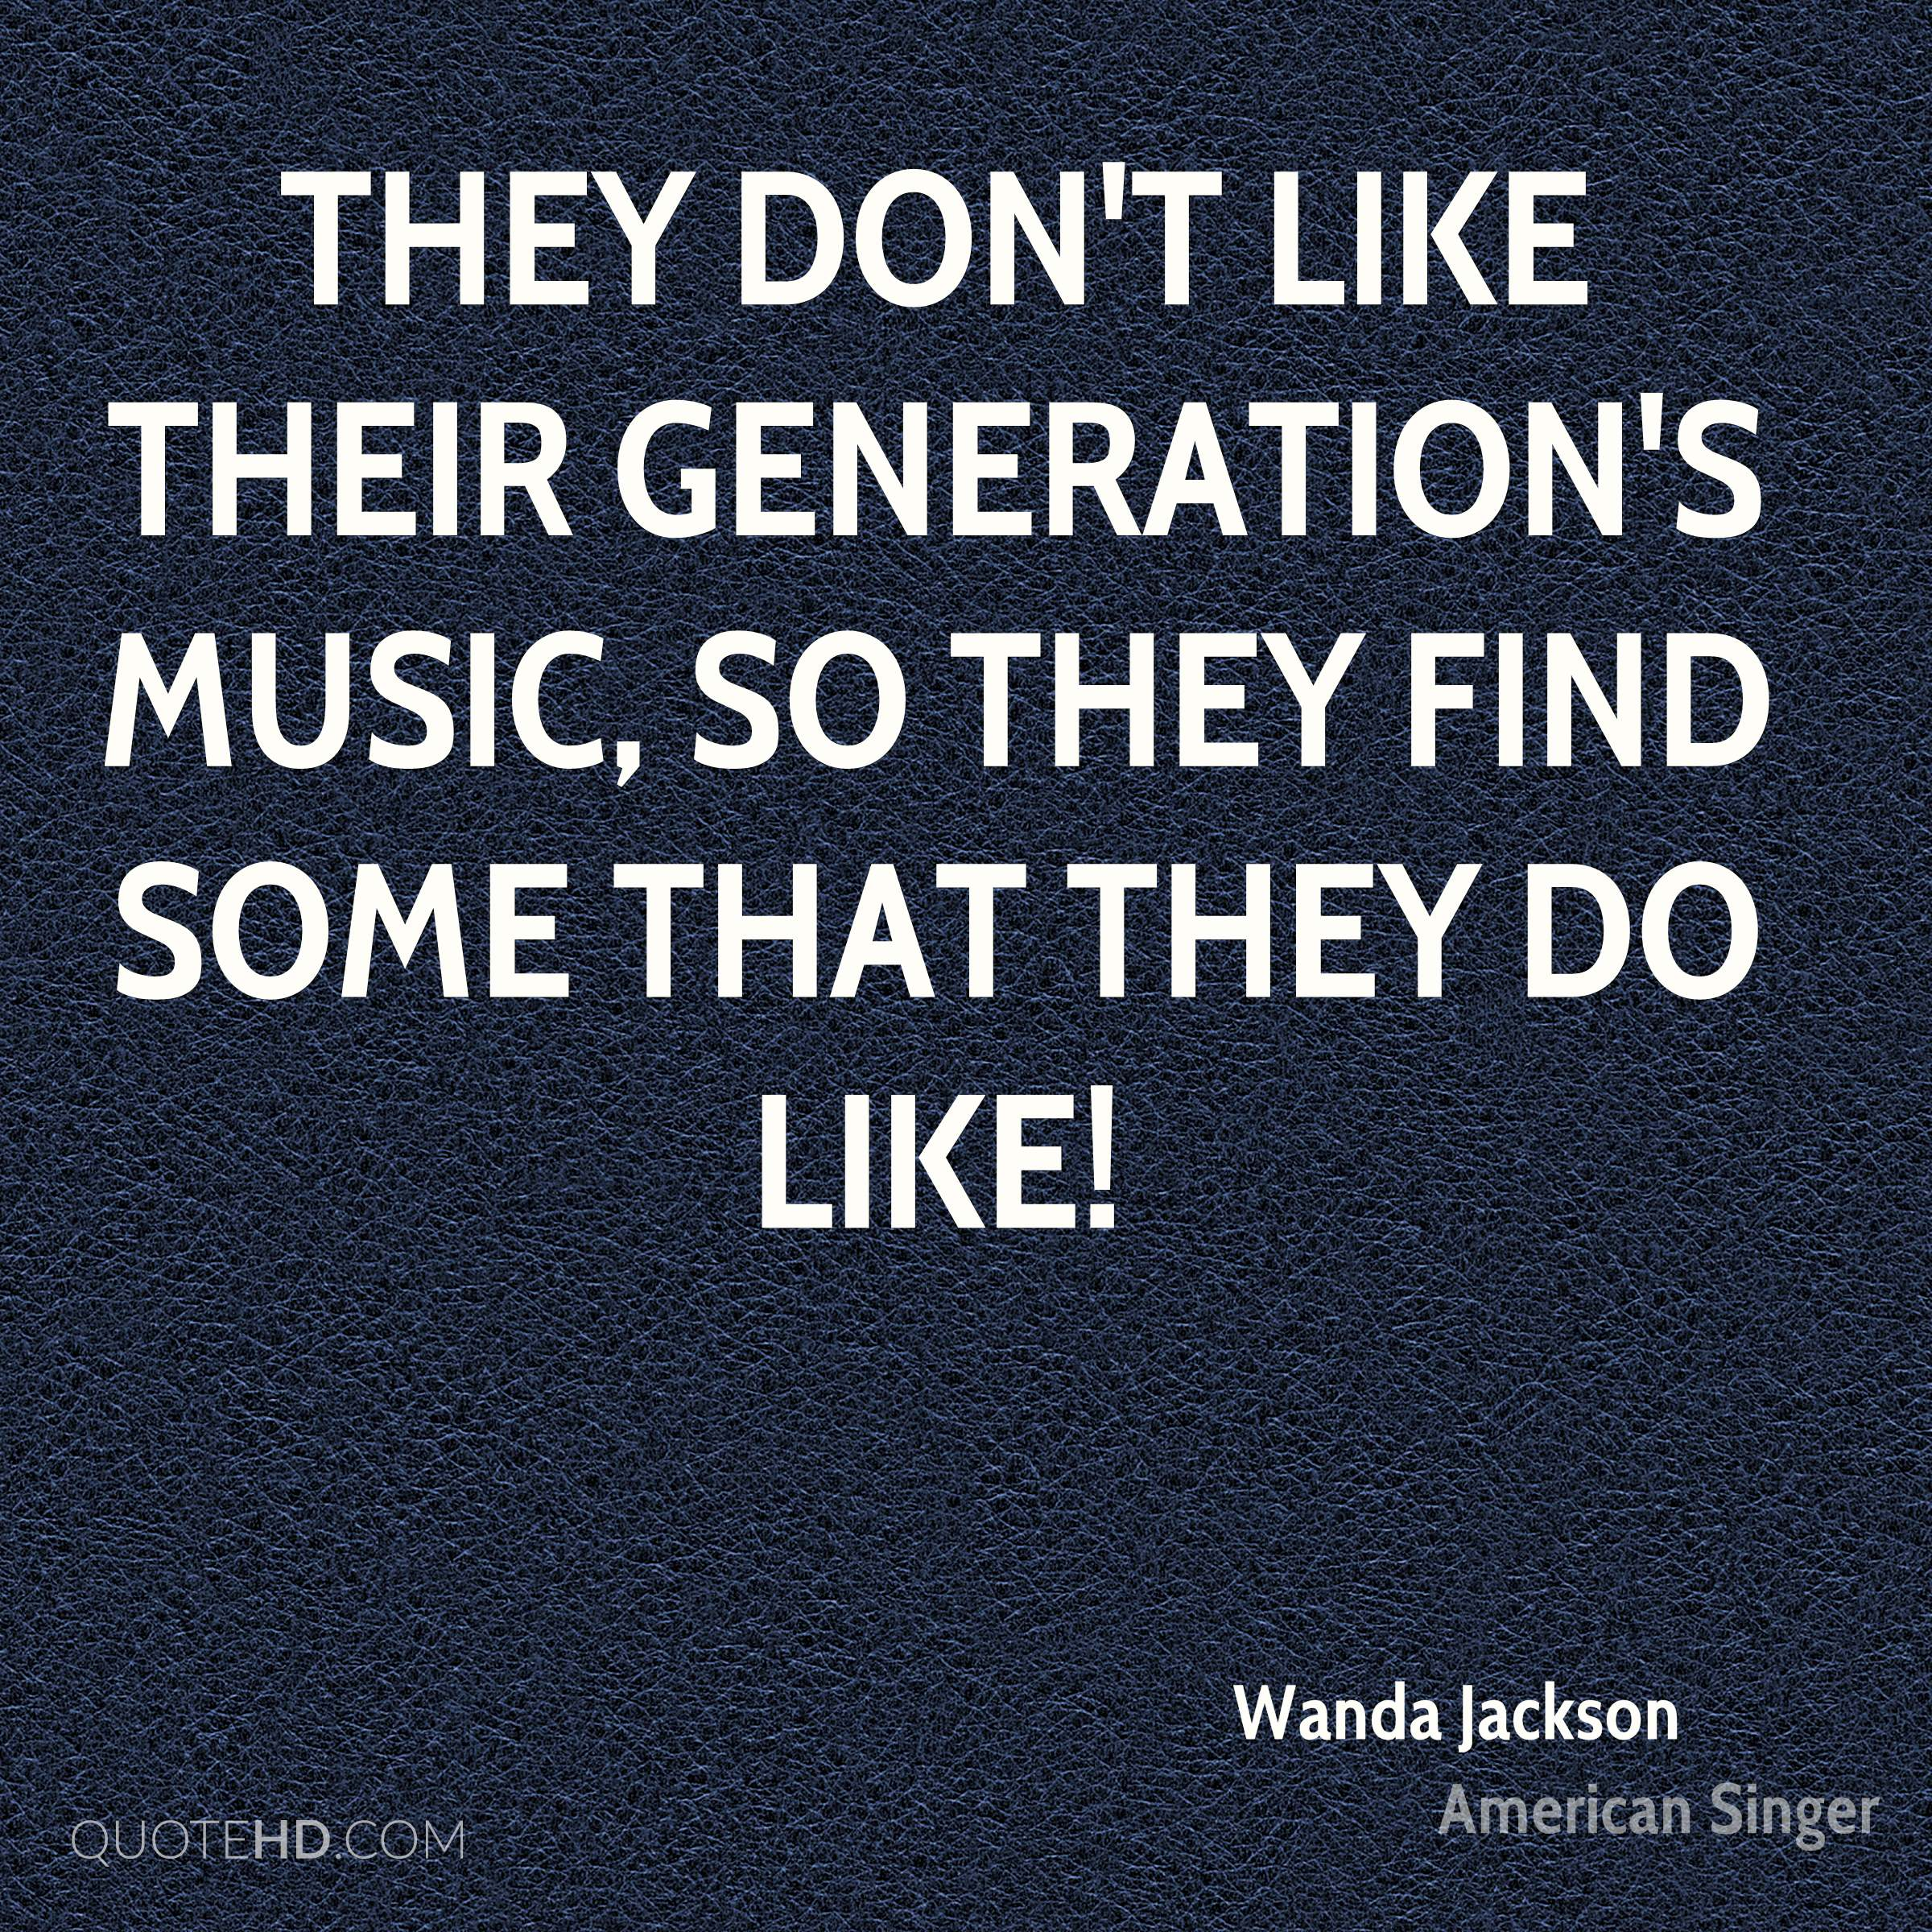 They don't like their generation's music, so they find some that they do like!